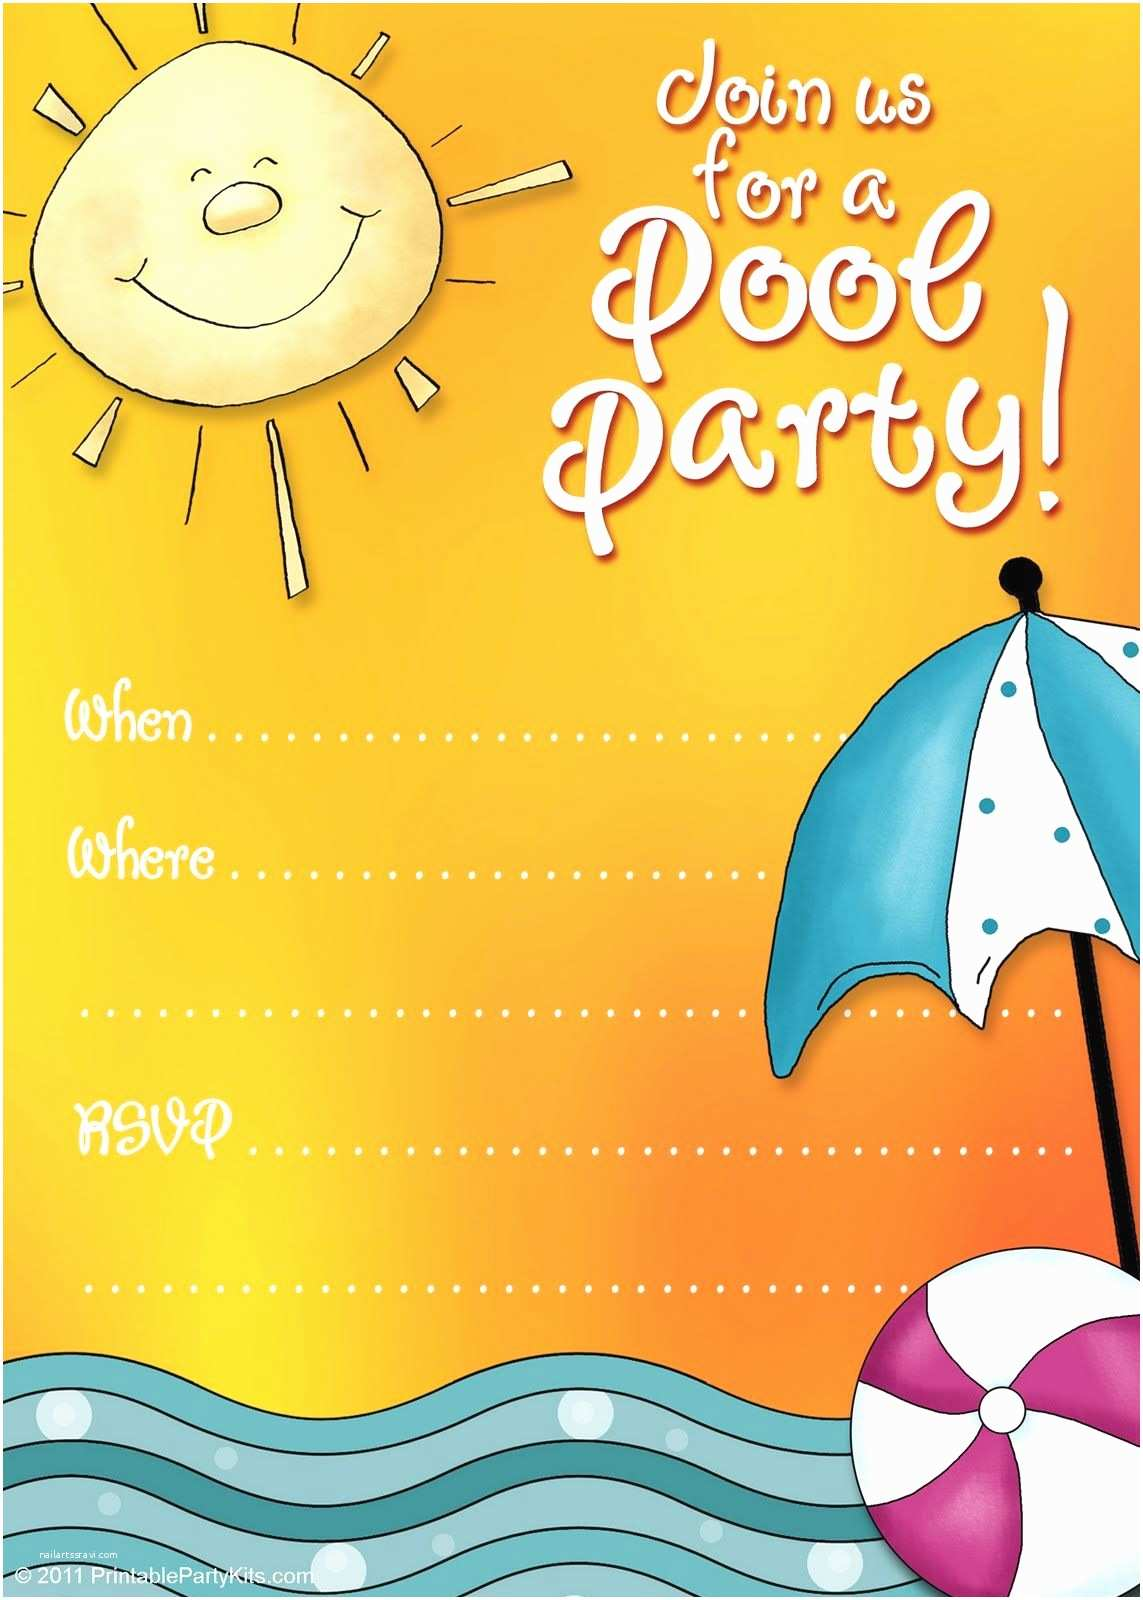 photograph regarding Printable Pool Party Invitations known as No cost Pool Occasion Invites No cost Printable Occasion Invites